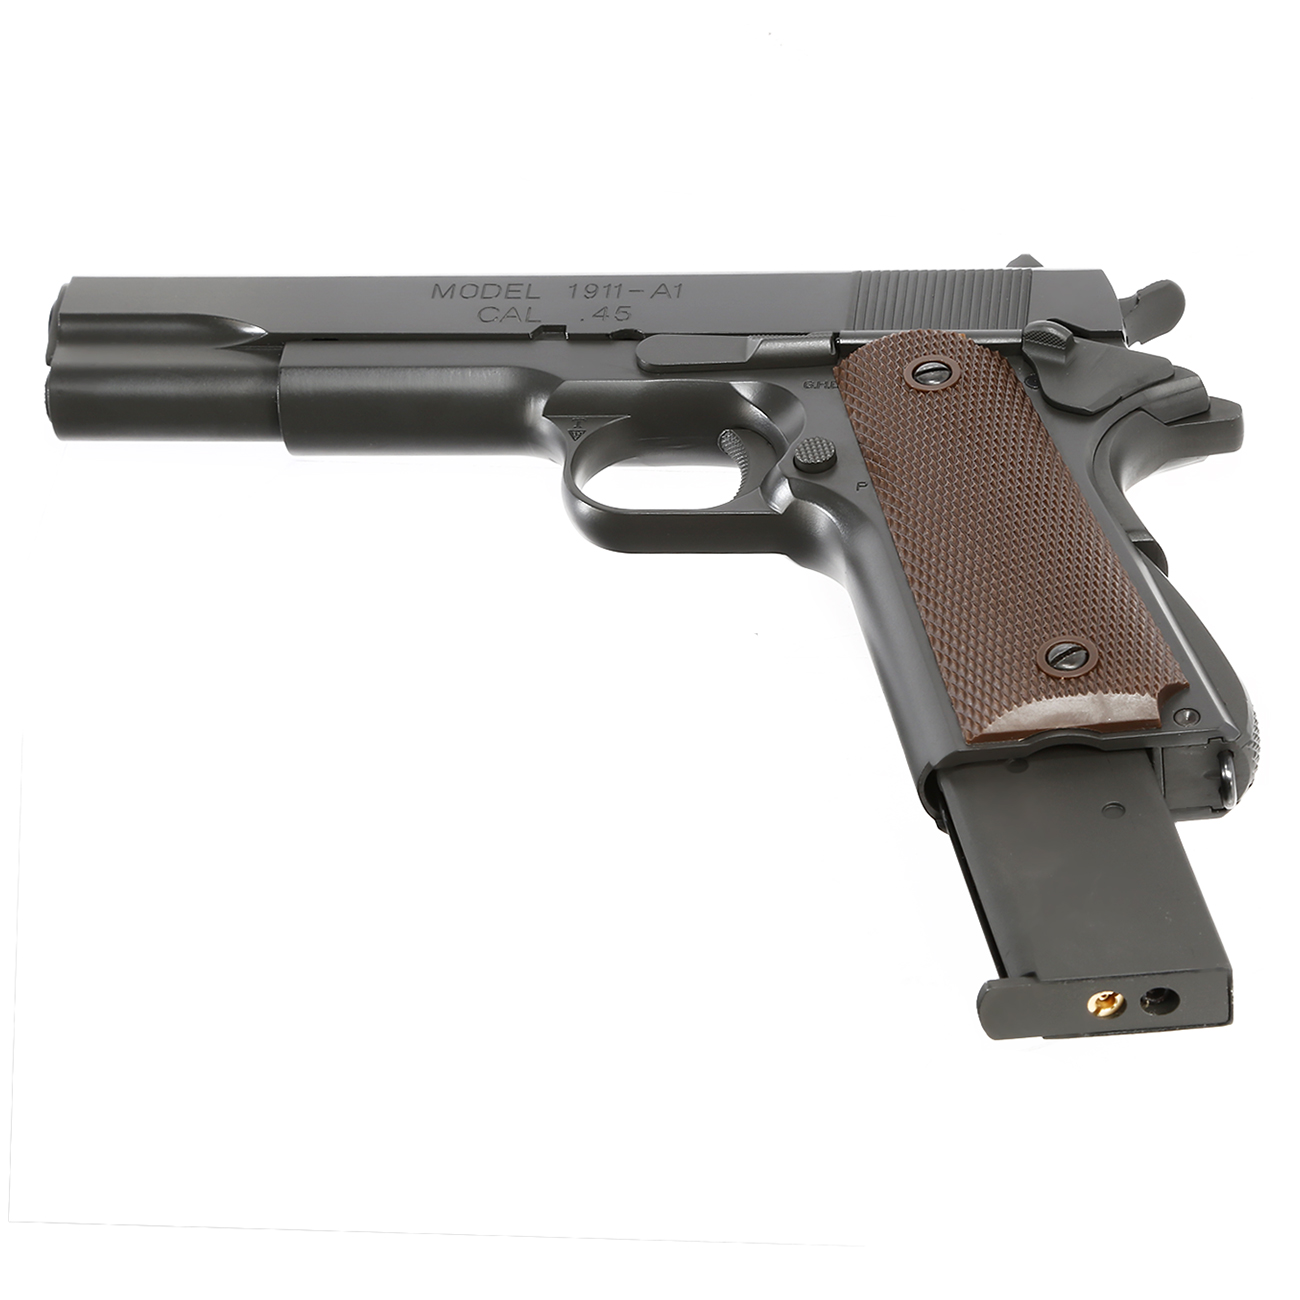 King Arms M1911-A1 Cal. 45 Vollmetall GBB 6mm BB Original-Grey 5